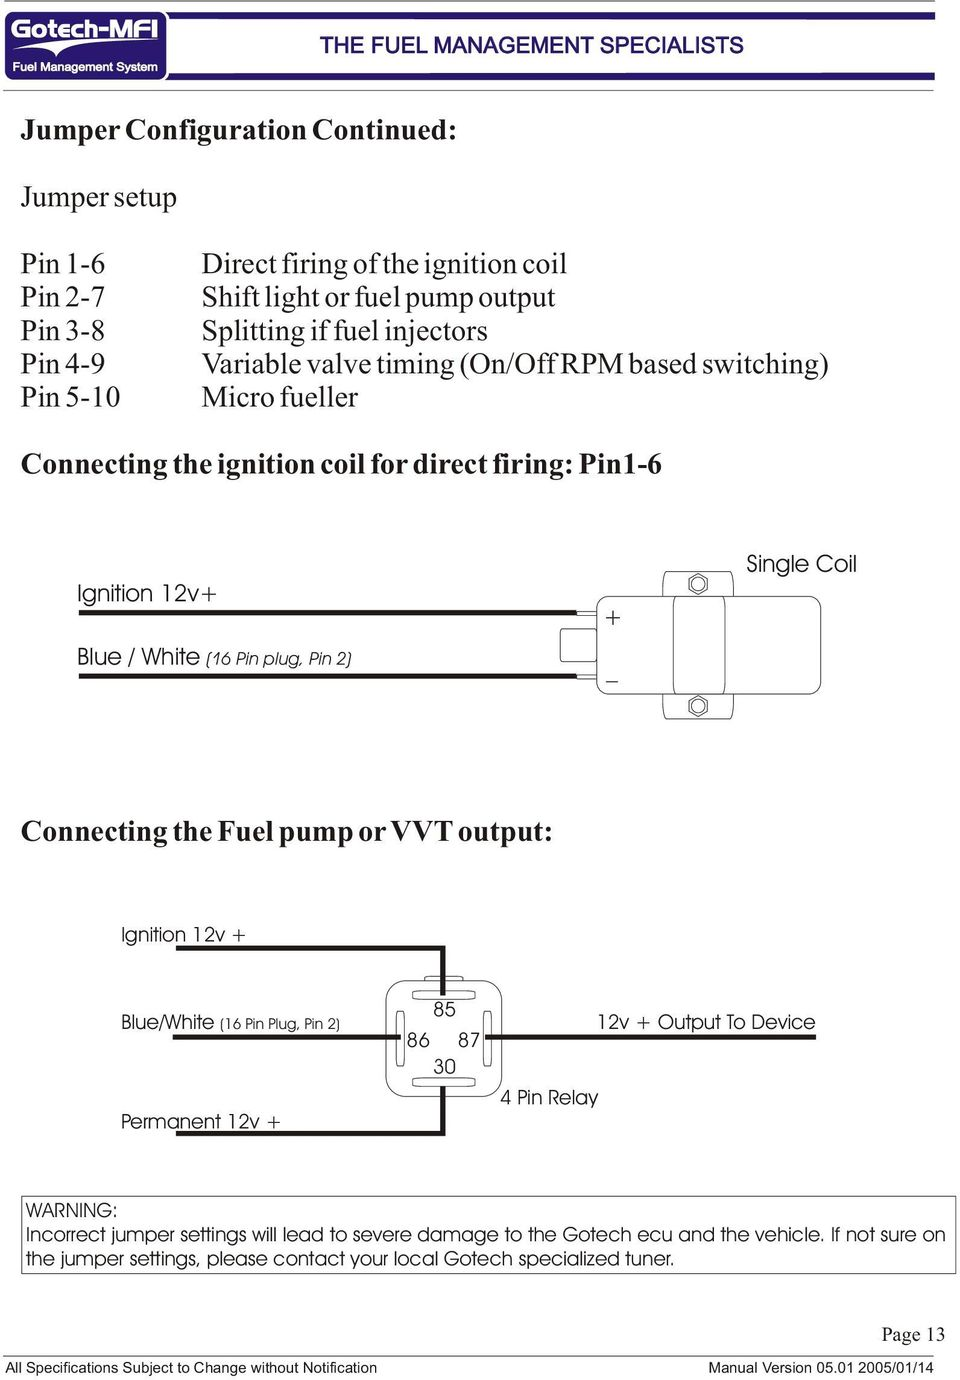 Mfi Instructional Manual Version Pdf 4 Prong Relay Setup Single Coil Connecting The Fuel Pump Or Vvt Output Ignition 1v